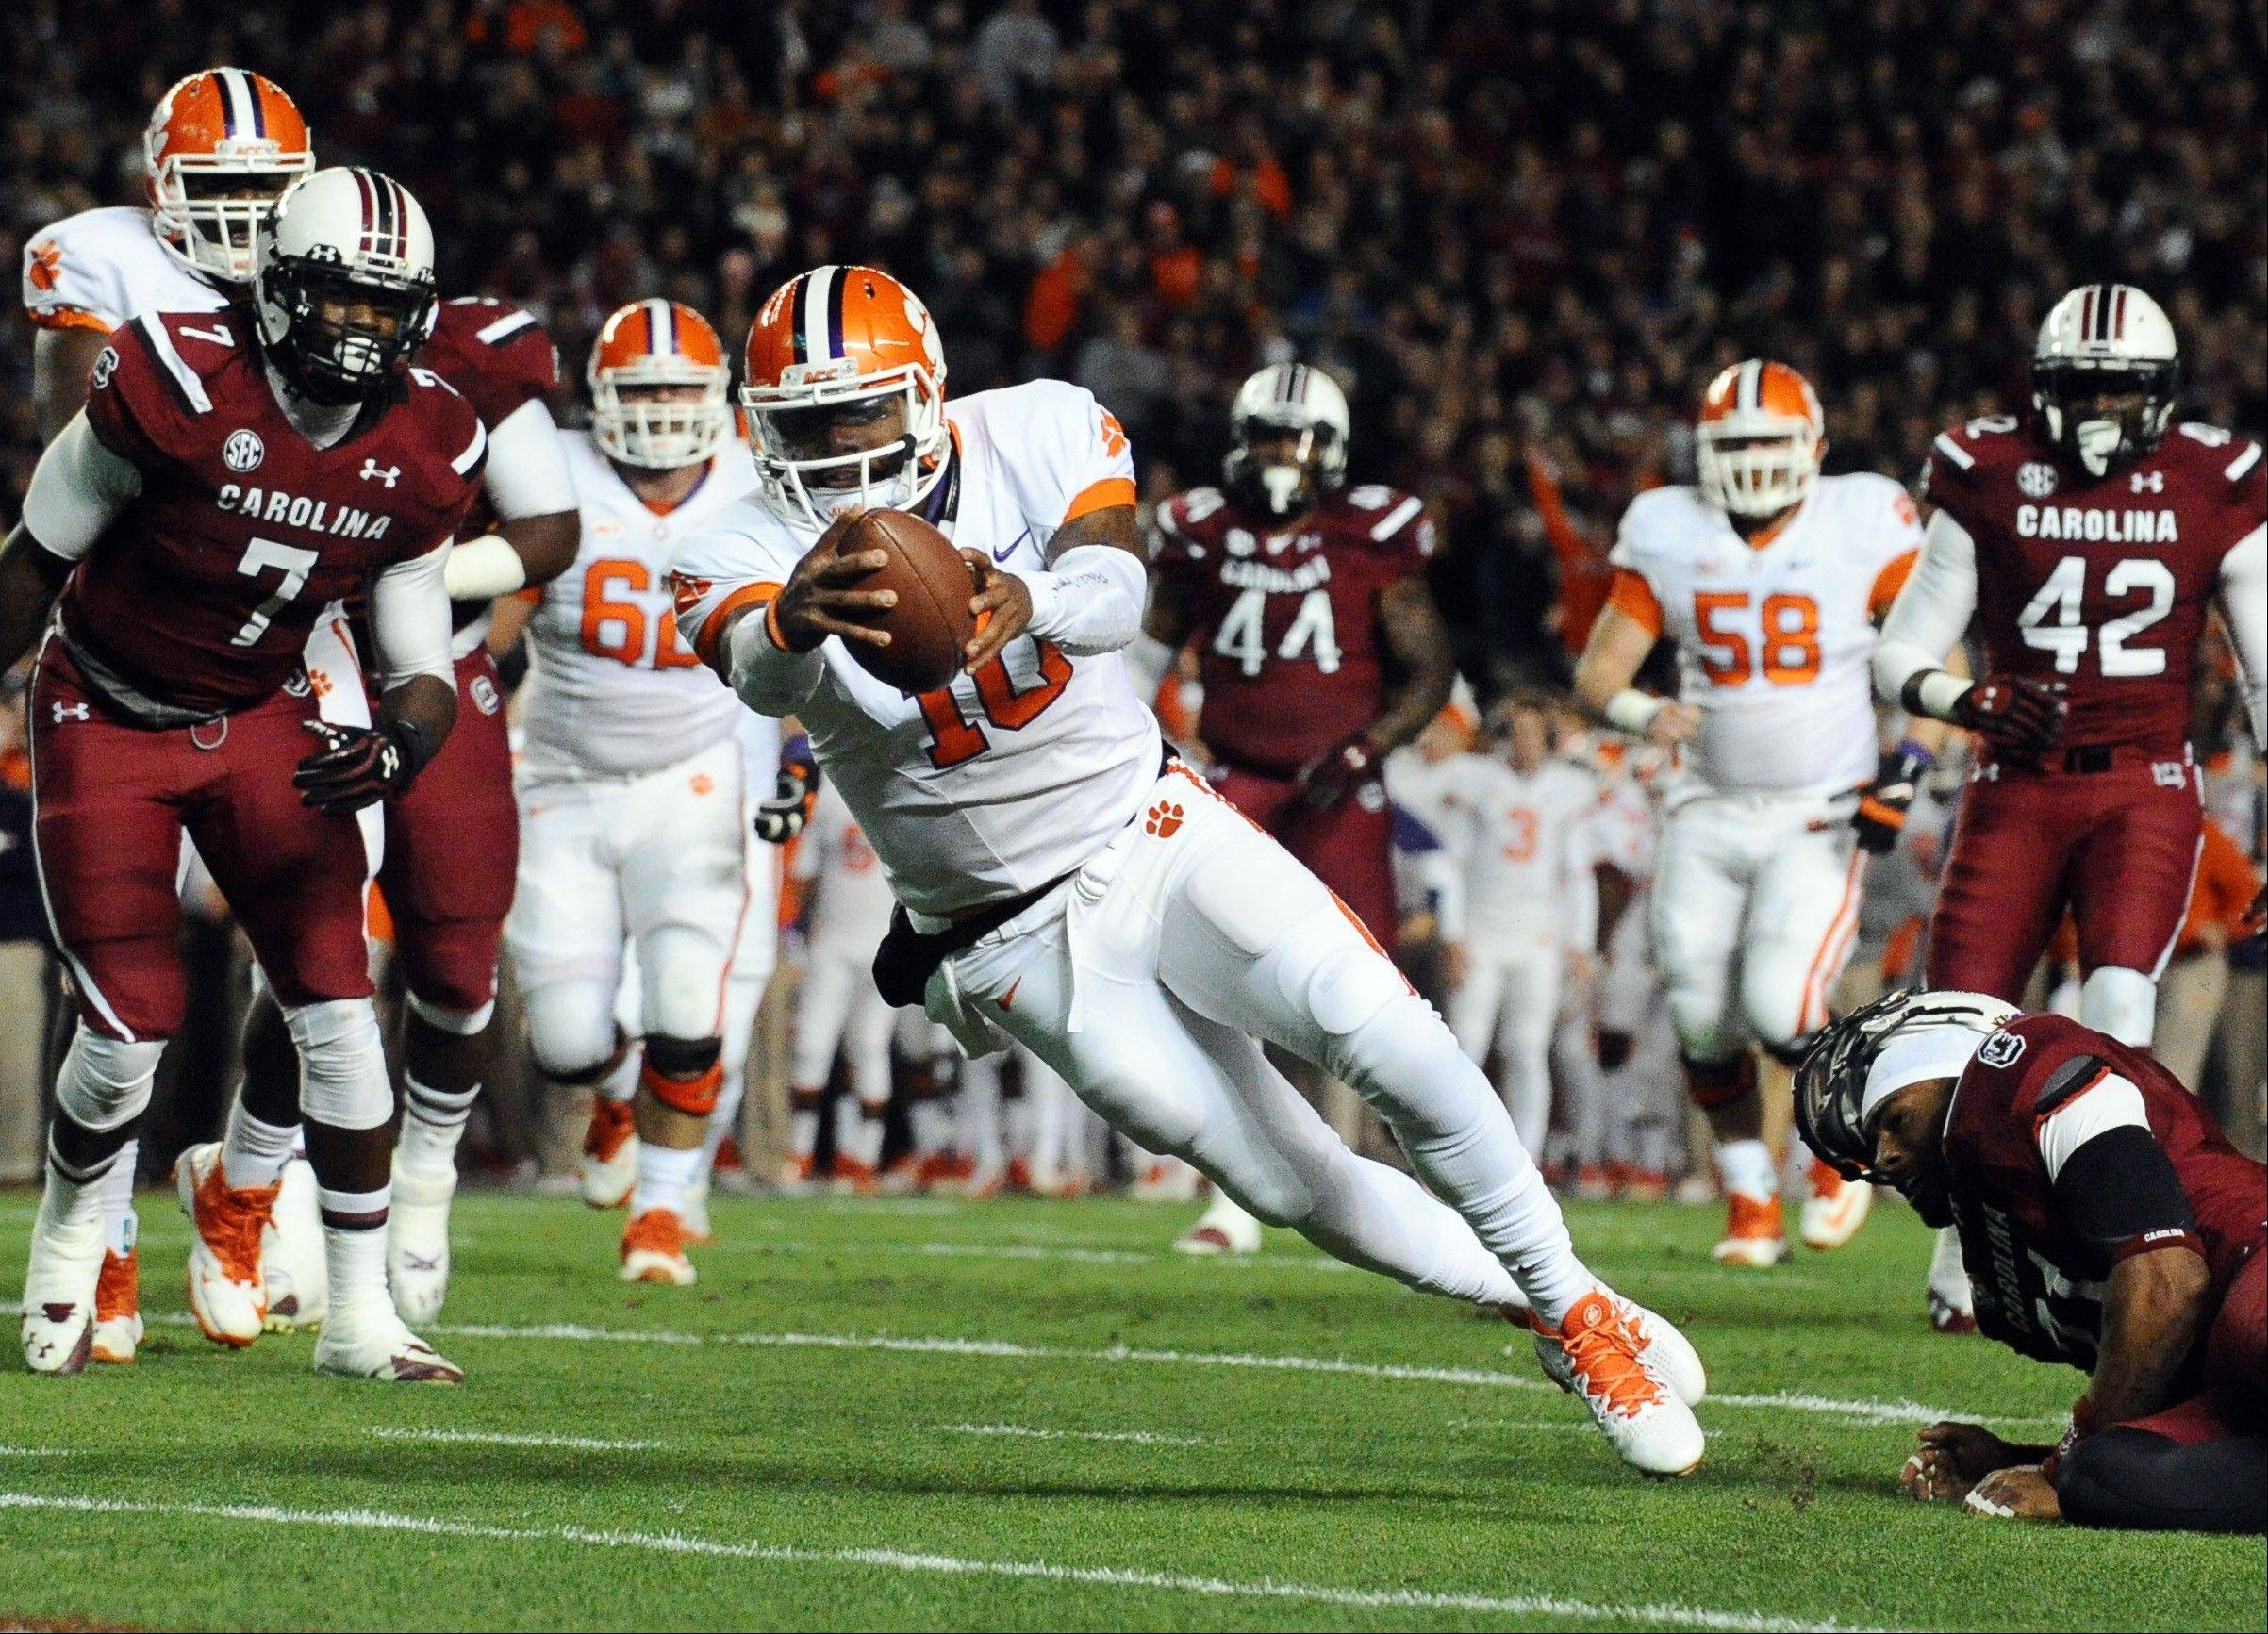 Clemson quarterback Tajh Boyd dives into the end zone for a touchdown during the first half of the Nov. 30 game against South Carolina in Columbia, S.C. Boyd is tied for 15th in major-college history with 102 touchdown passes.